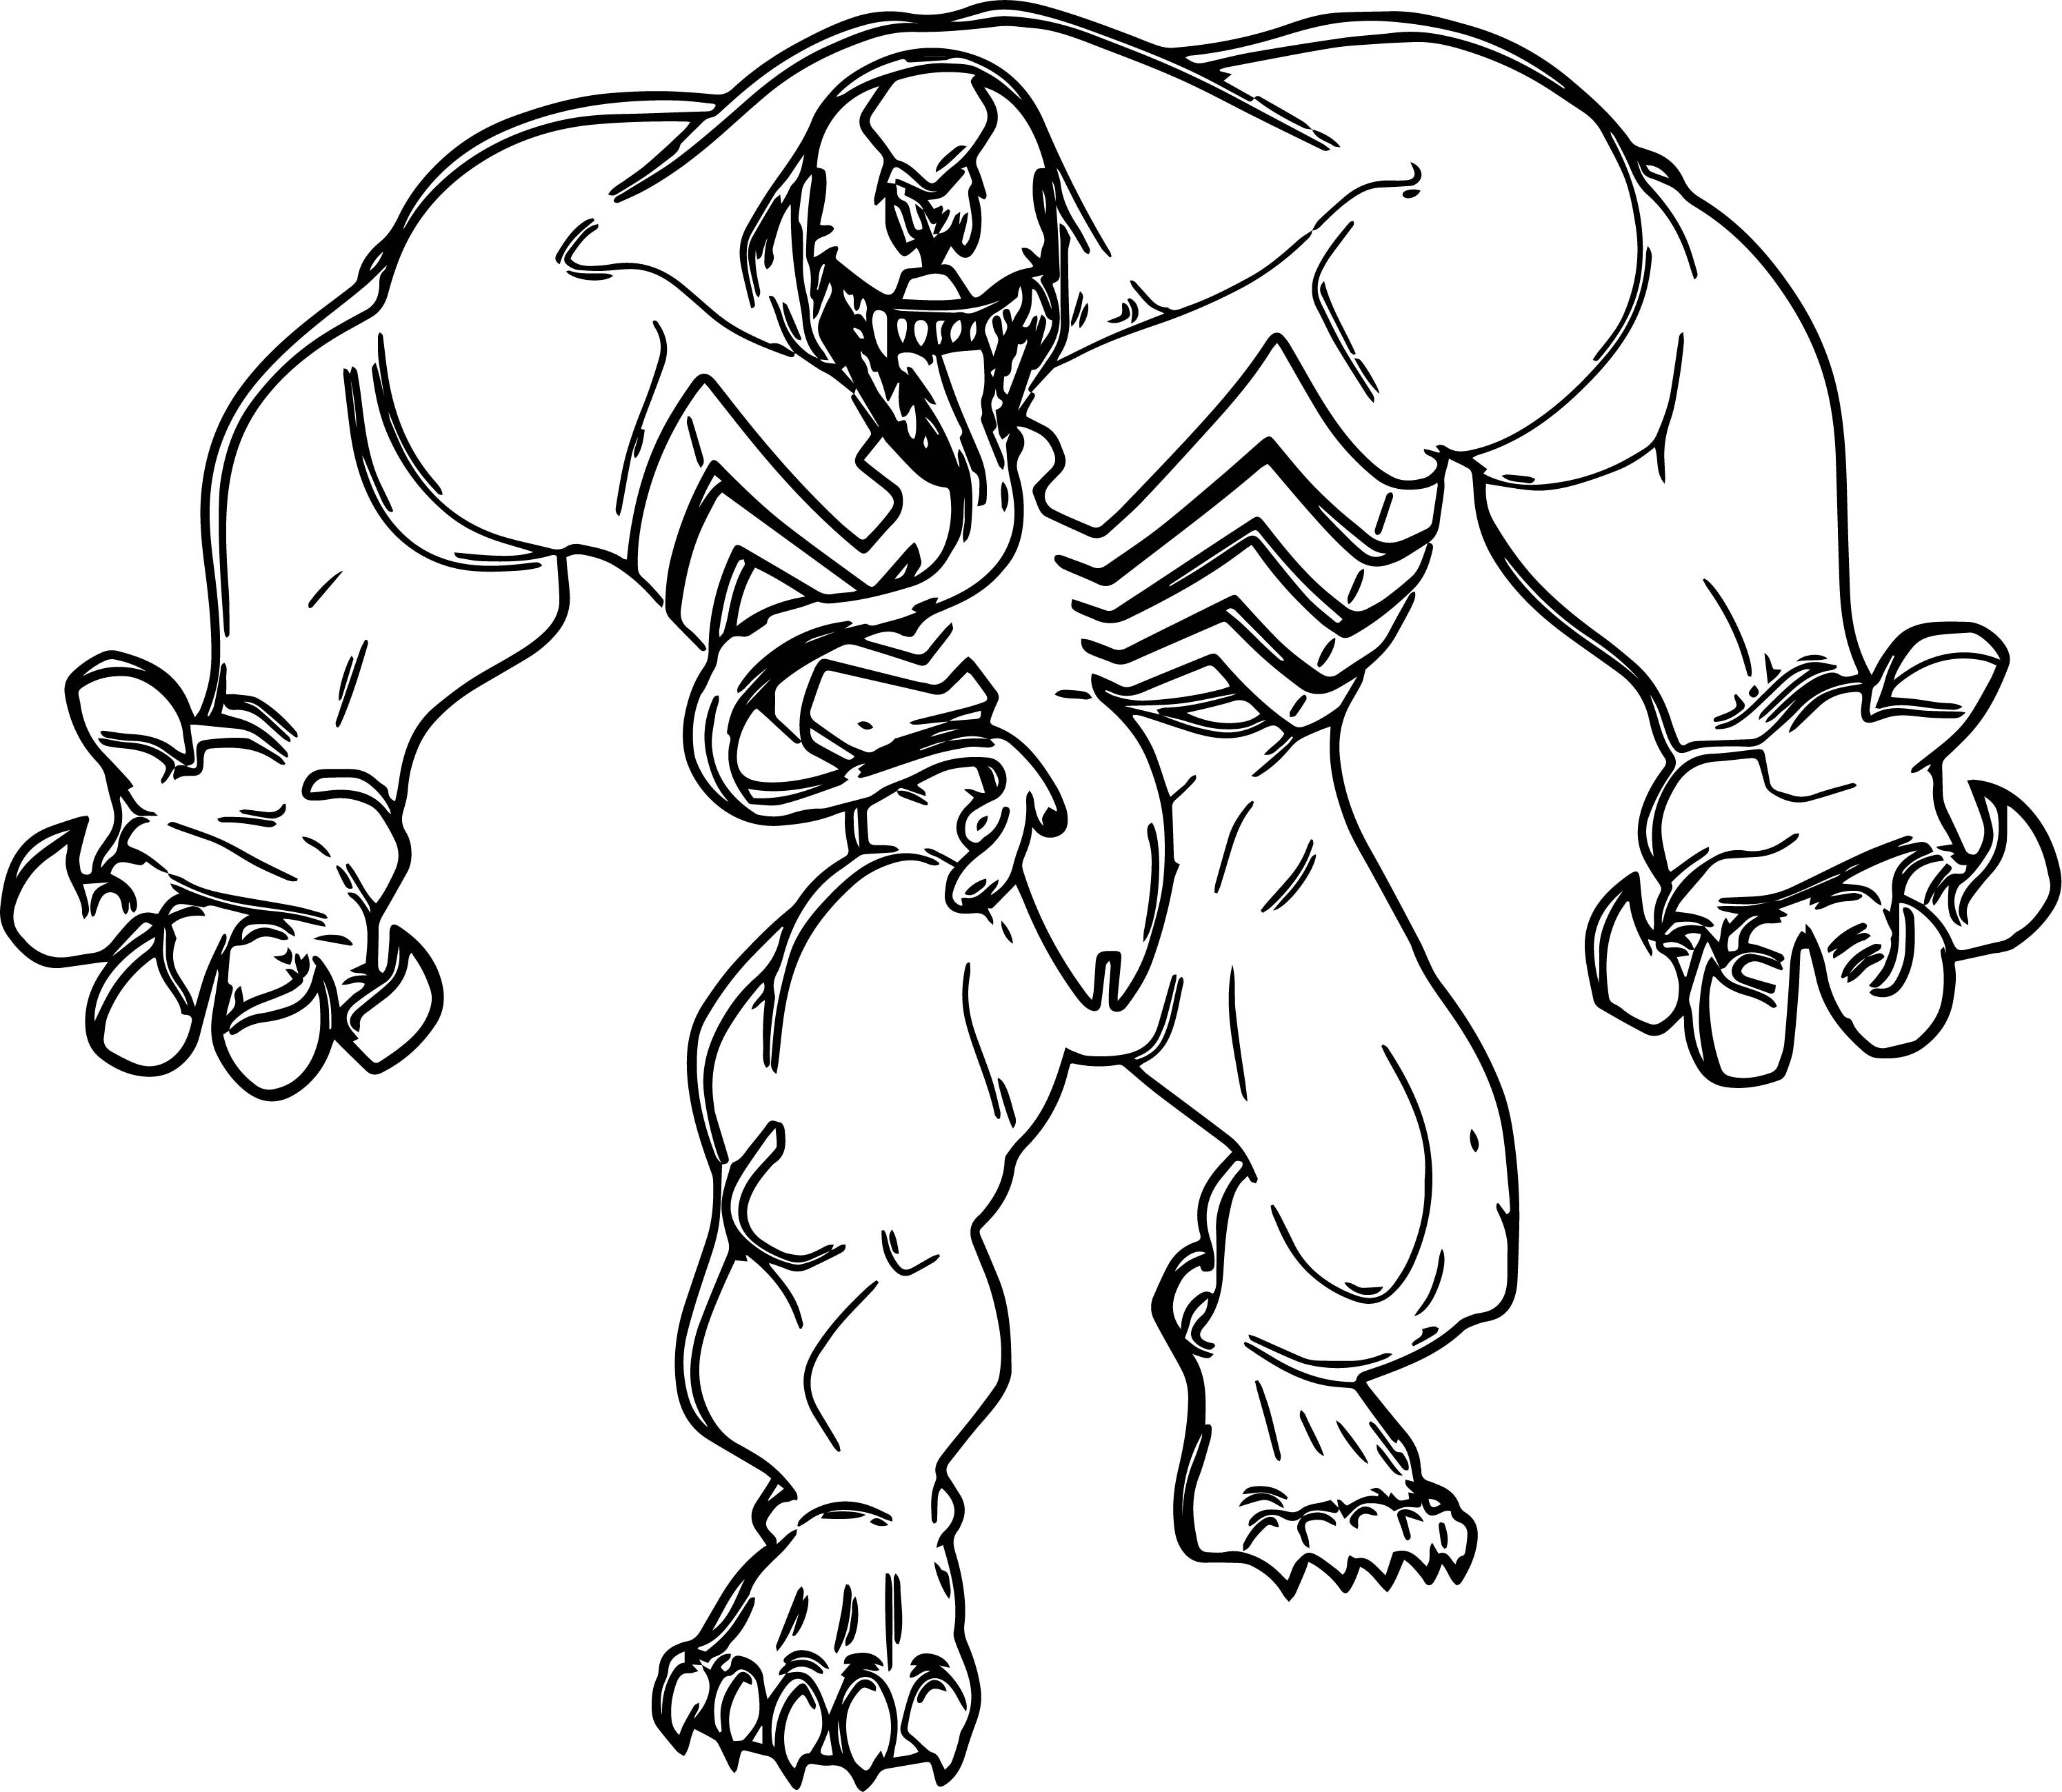 free venom coloring pages 24 venom coloring pages free printable coloring sheets venom coloring free pages